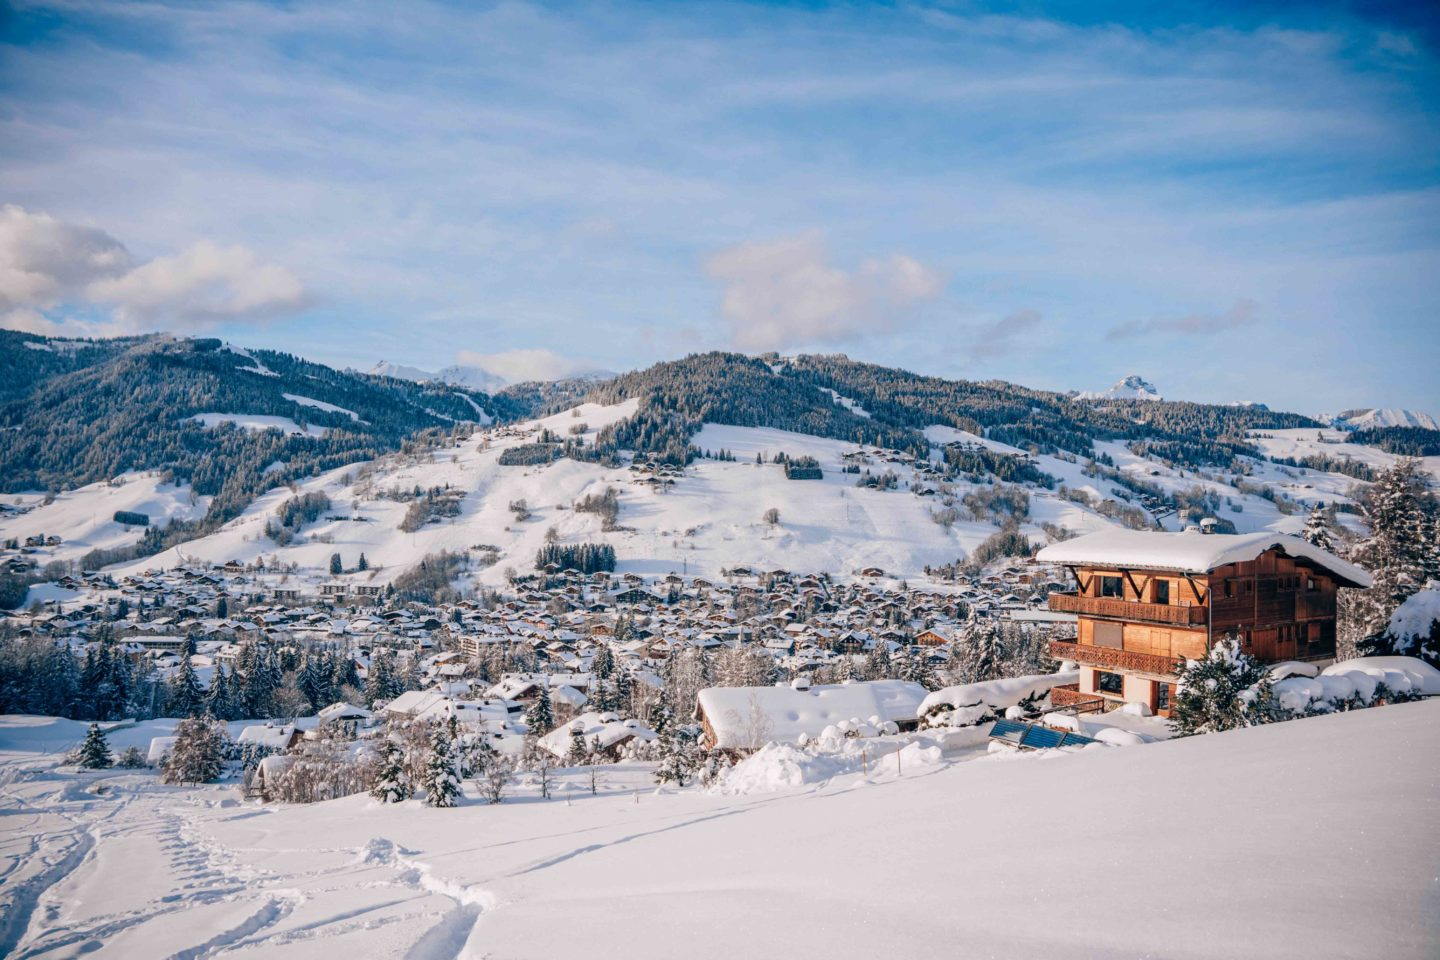 View on Megeve village from the slopes